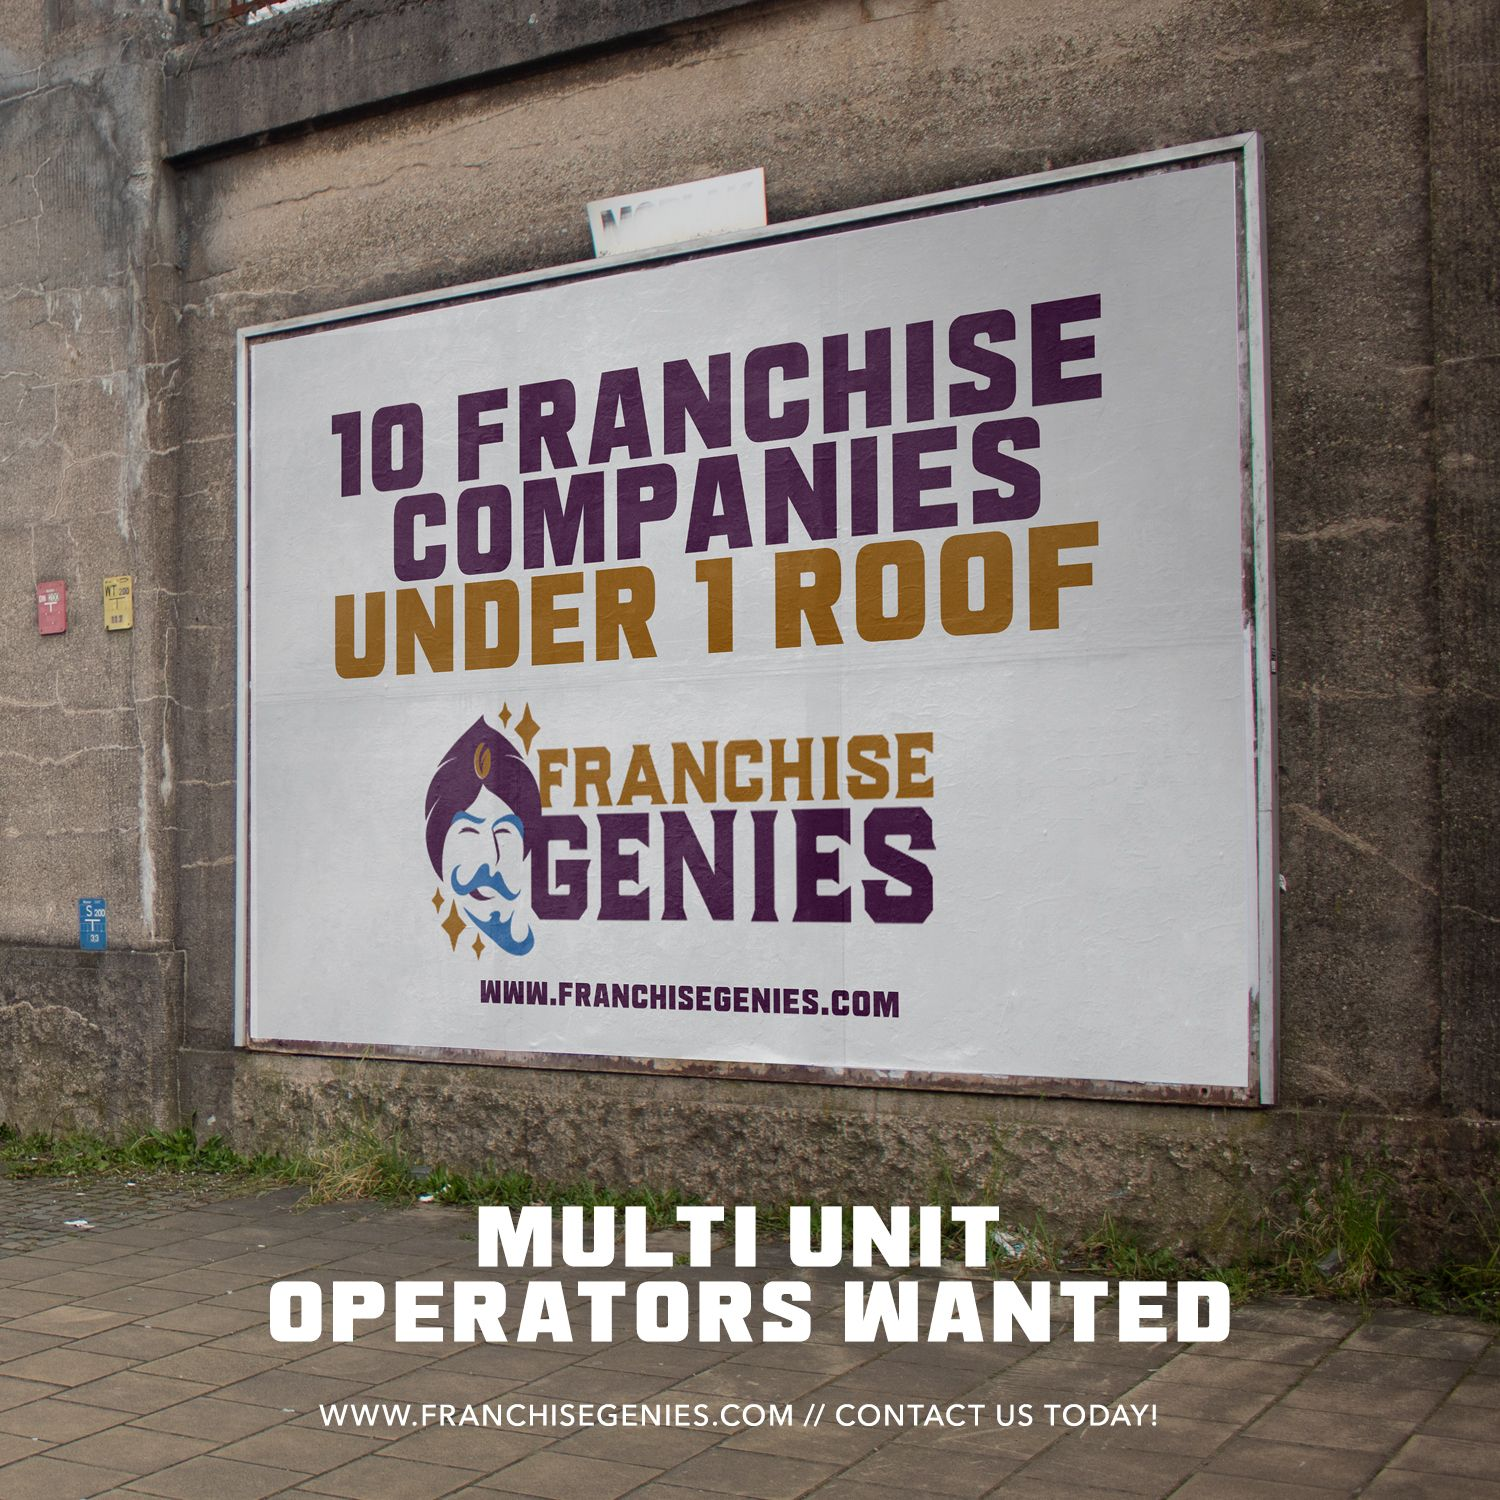 Franchise Genies Owners Cover All Bases in the Food Industry